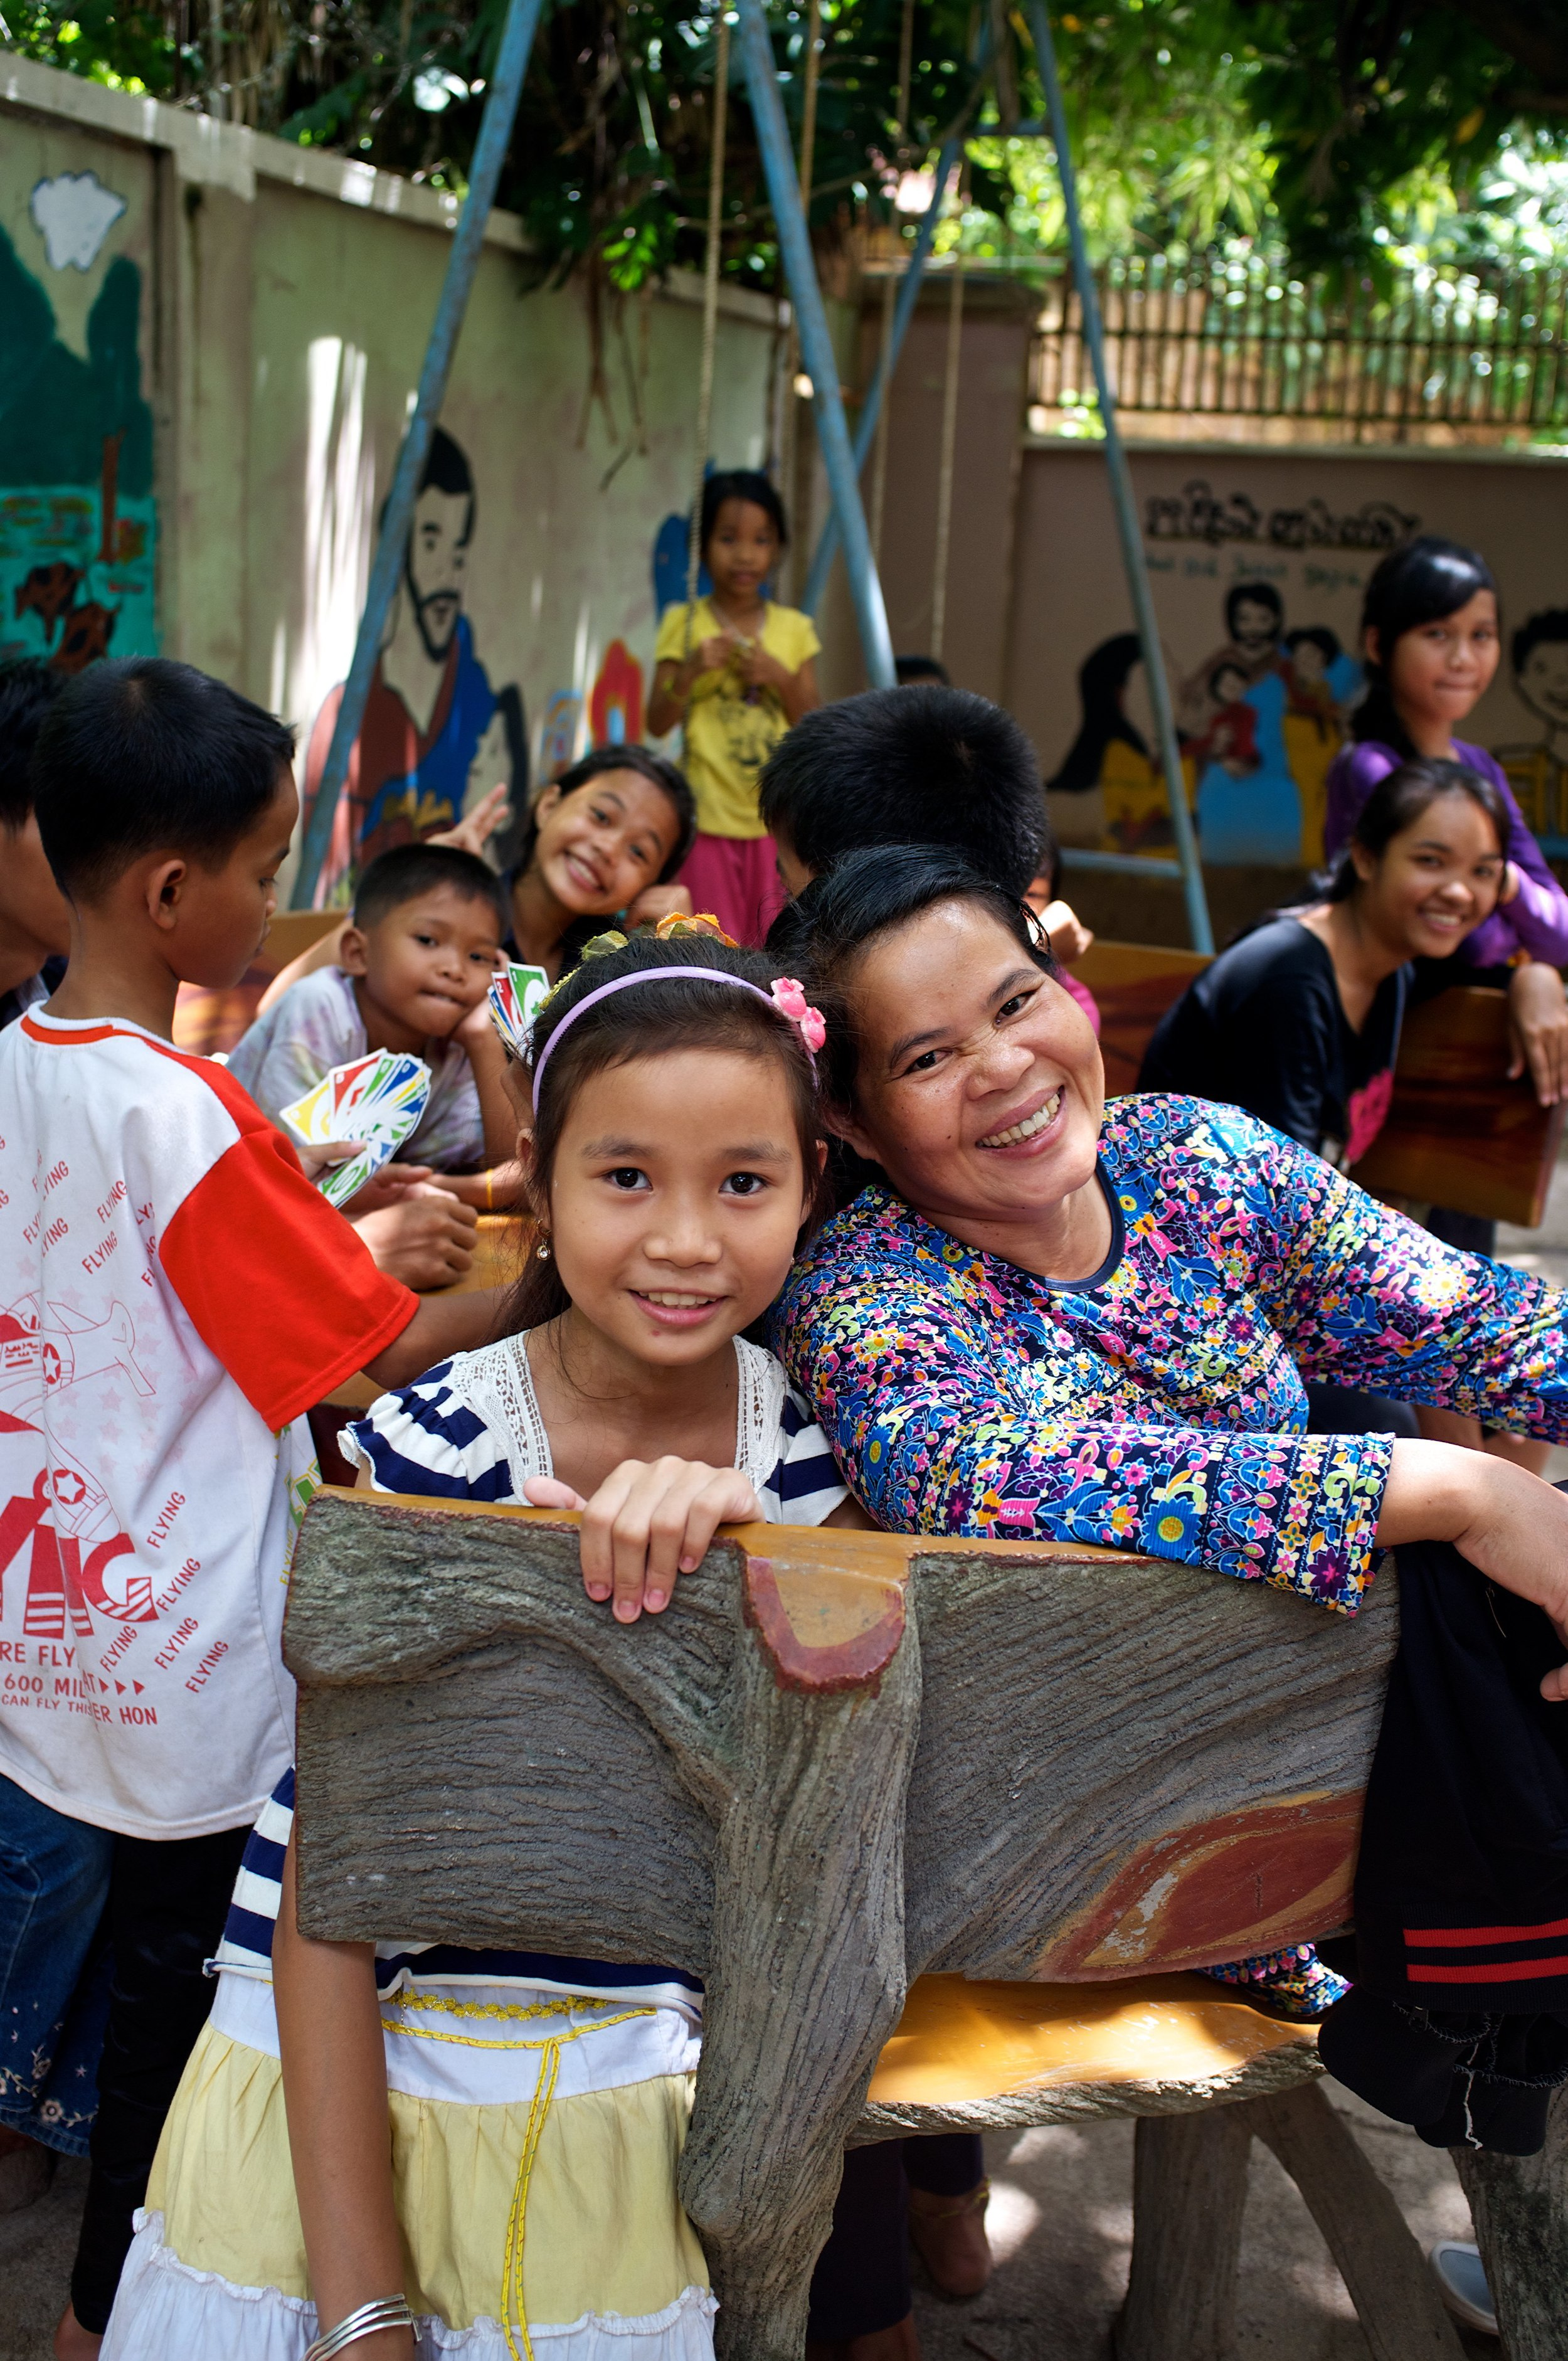 At the Prek Eng 3 children's home, as at all of our 29 homes in Cambodia, Thailand and India, orphaned children receive the kind of care we'd want for our own chldren if they were suddenly alone and unable to receive loving support from extended family members.